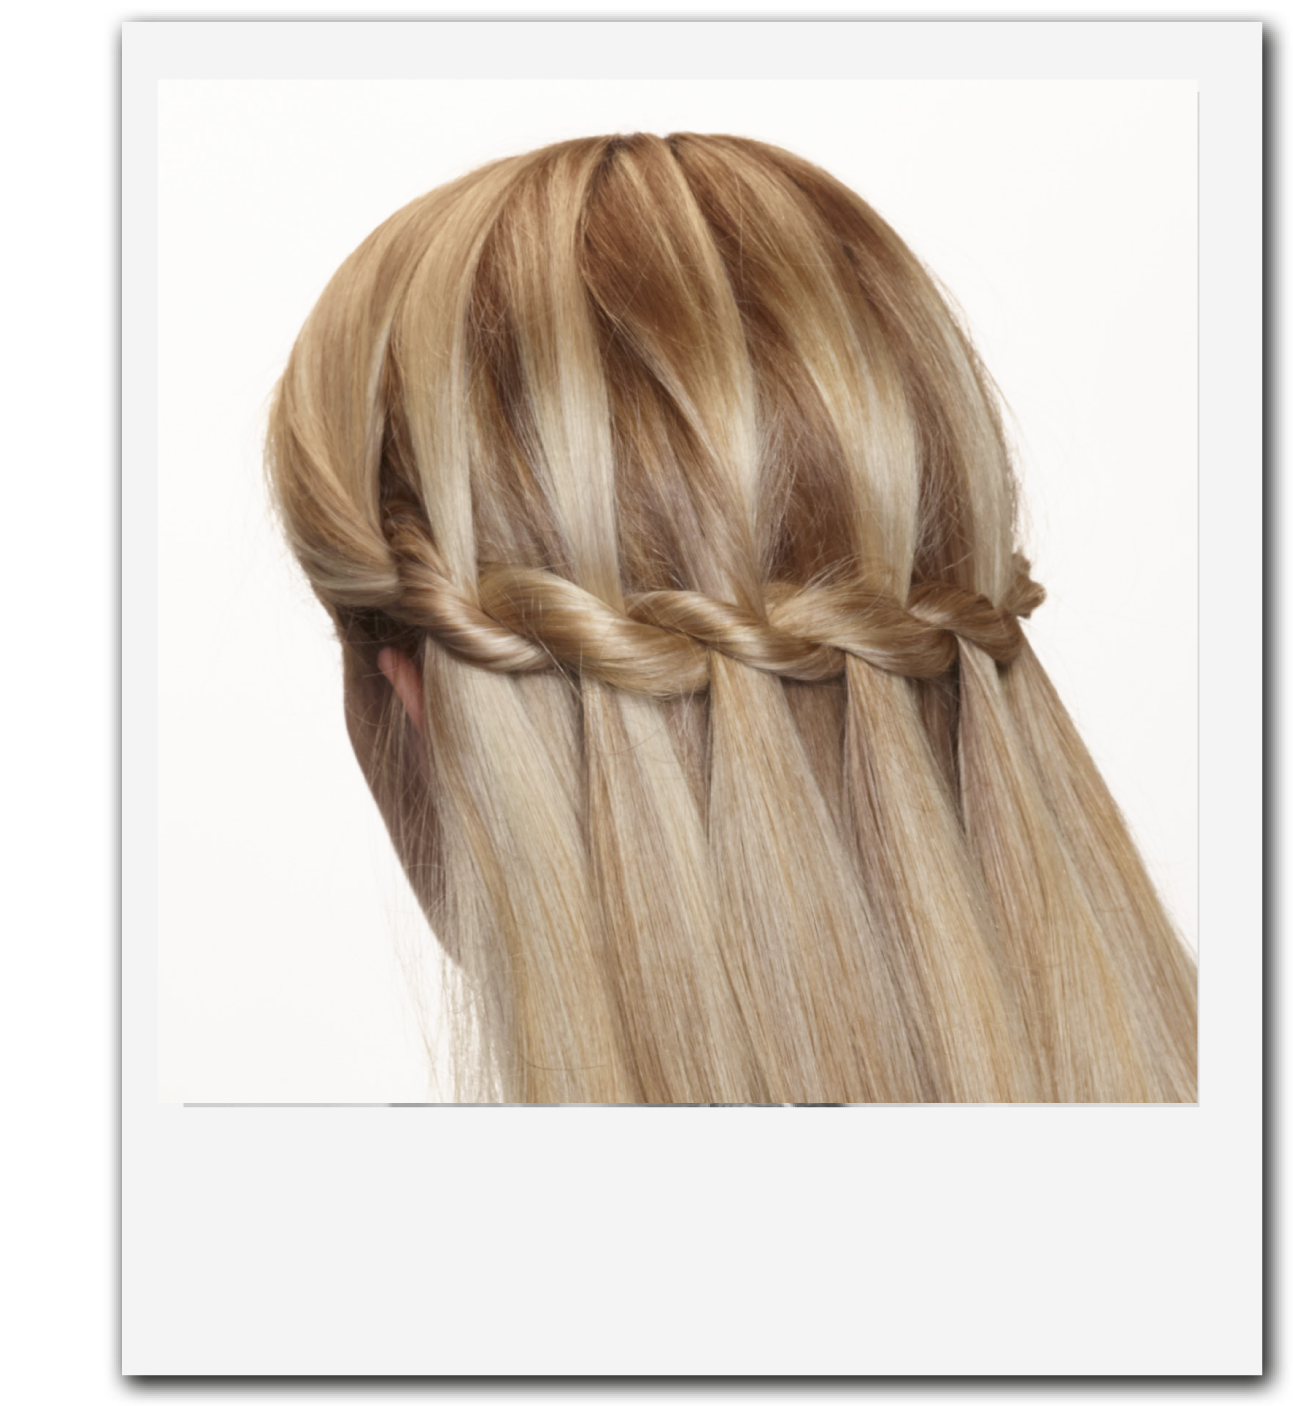 Waterfall Braid The New Quick Twist From Infinitipro By Conair Twistandshare